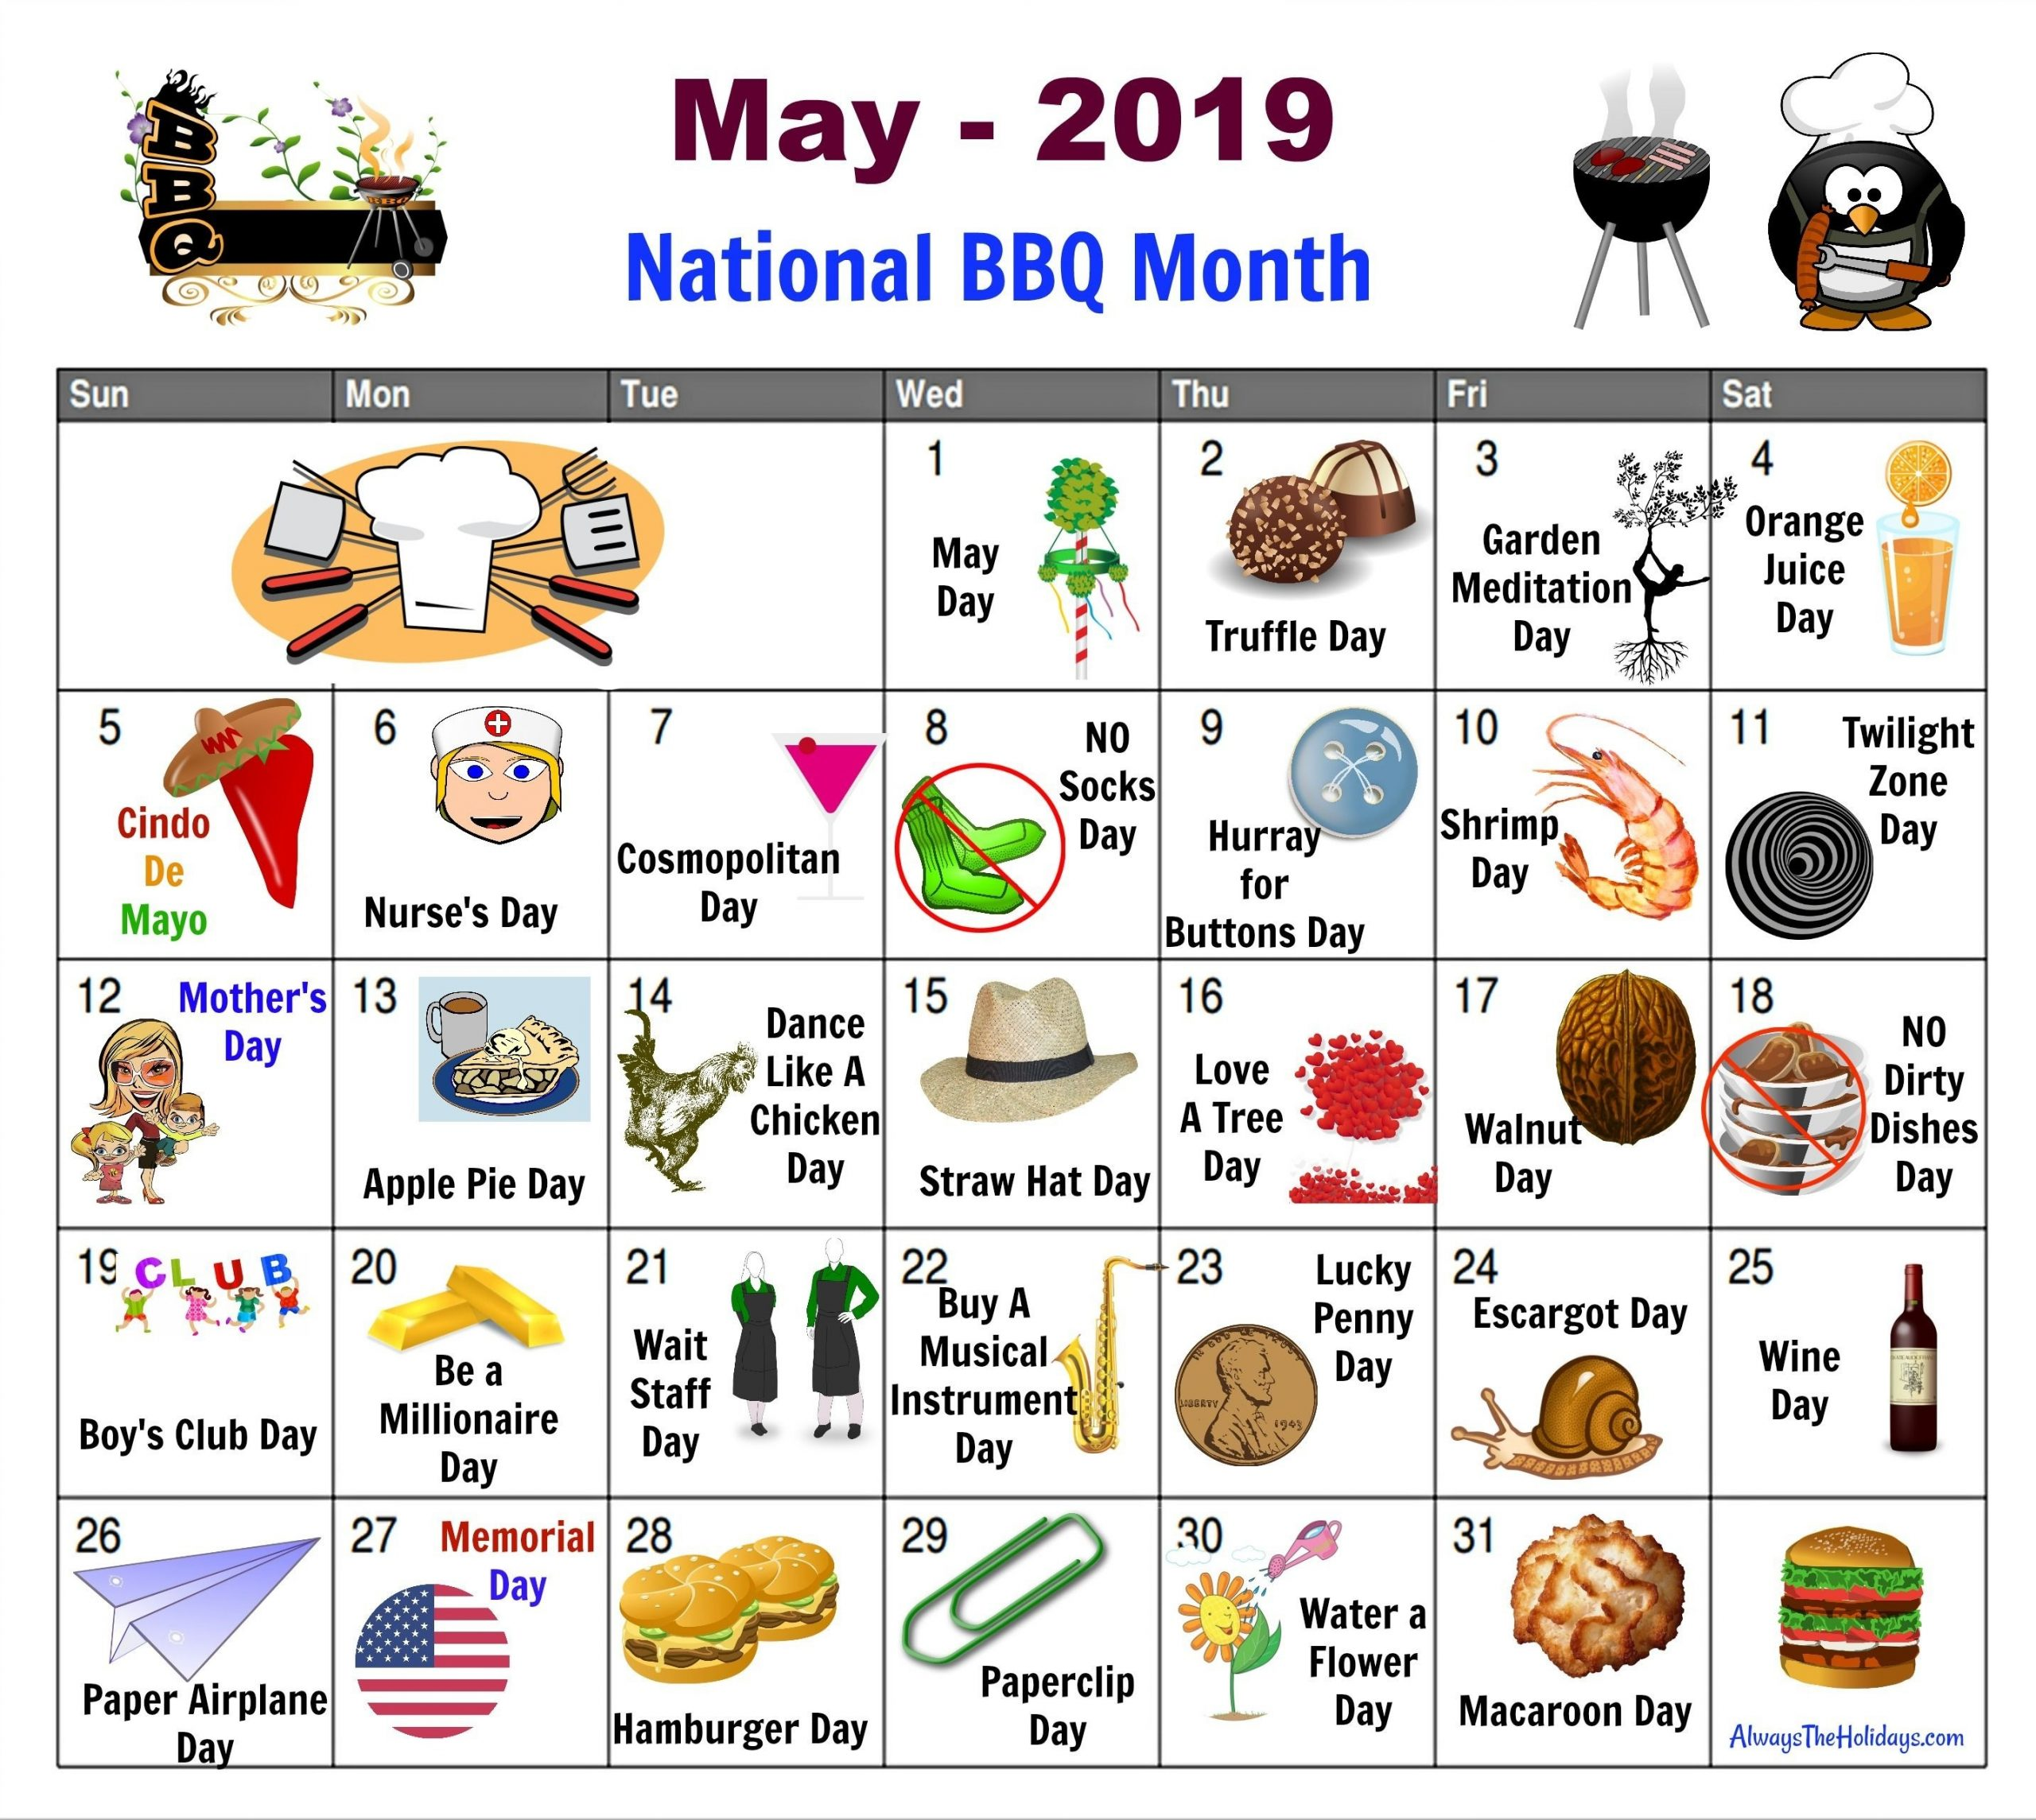 May National Days Calendar - Free Printable. Find Out All-Fun National Day Calendar Of 2021 Printable